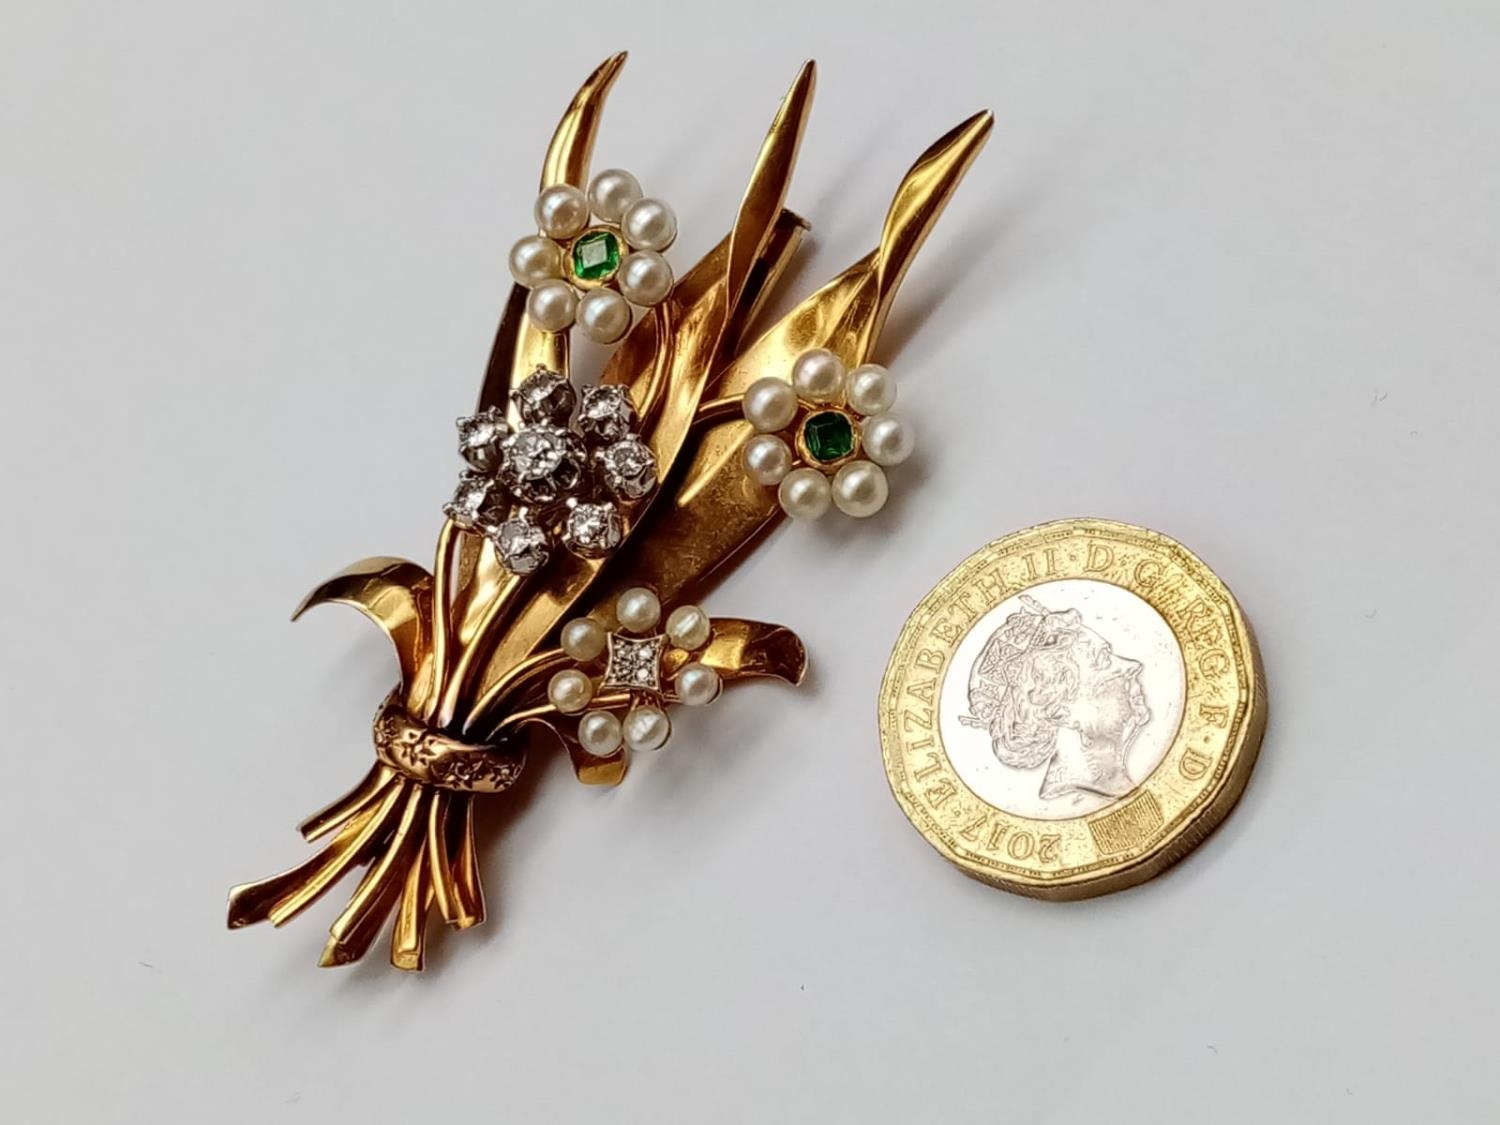 AN INTERESTING 18K GOLD BROOCH FASHIONED IN A FLEUR DE LYS STYLE WITH DIAMONDS, EMERALDS AND SEED - Image 5 of 5